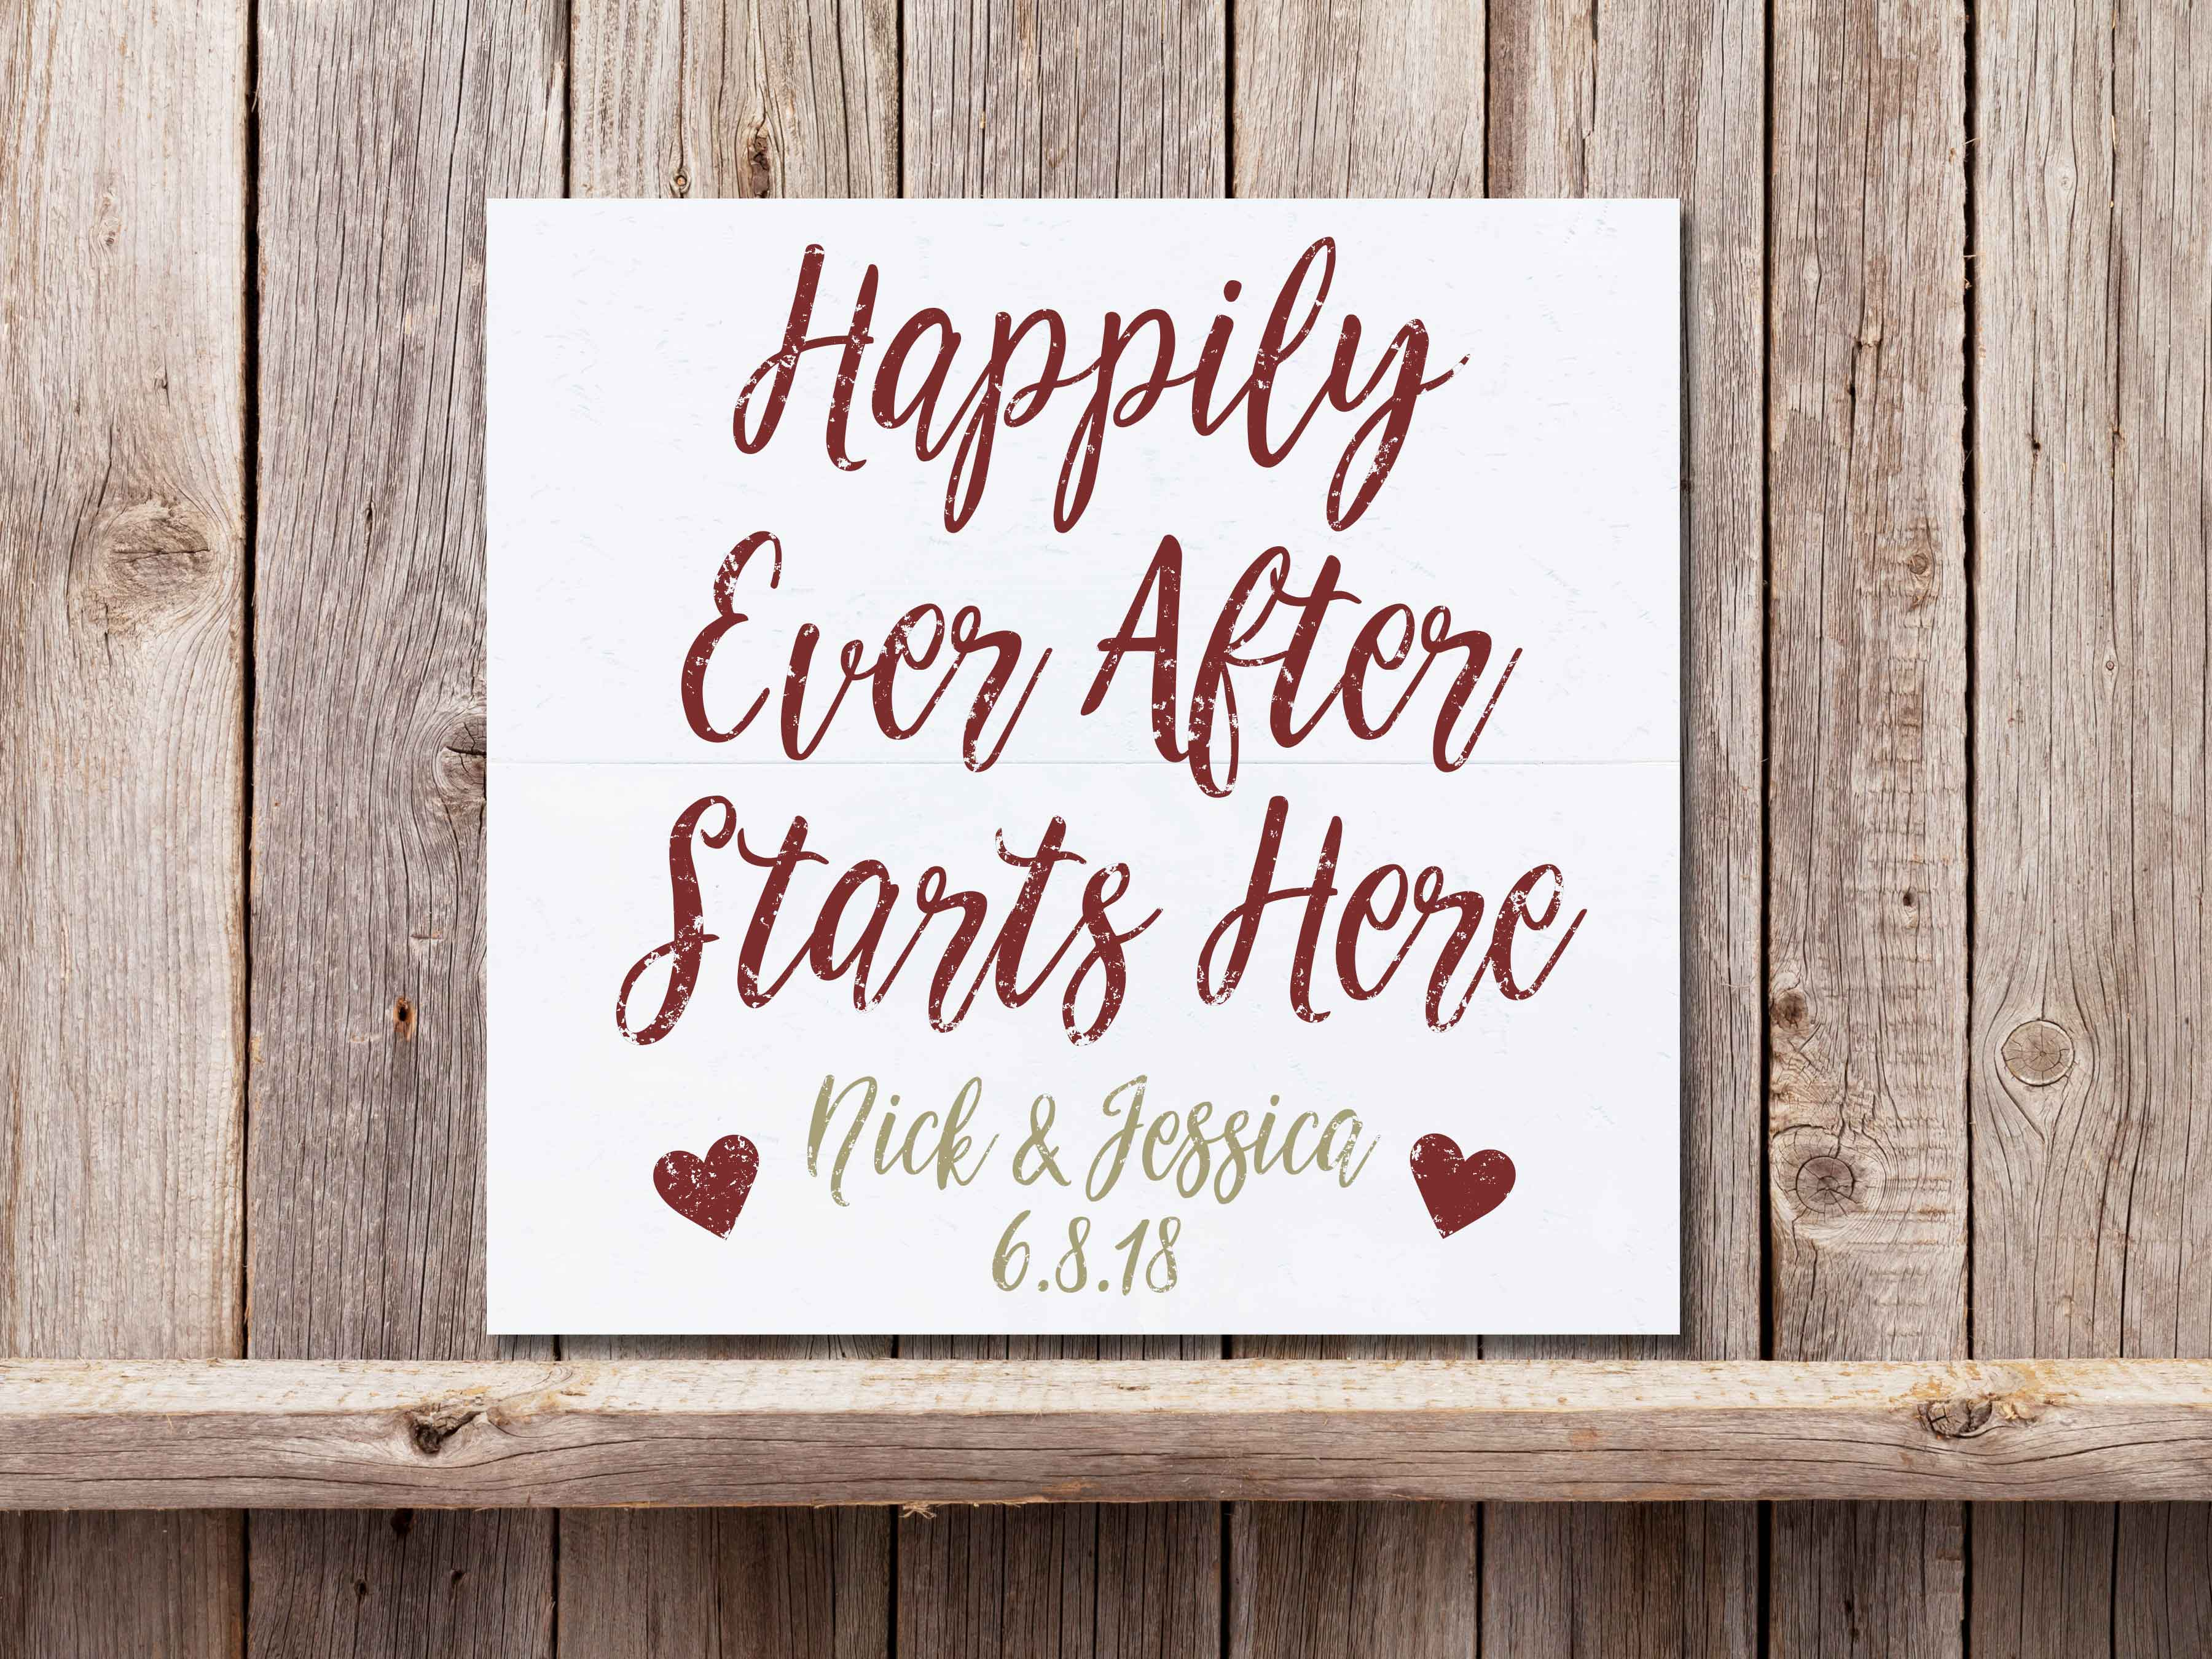 Happily Ever After 22×24